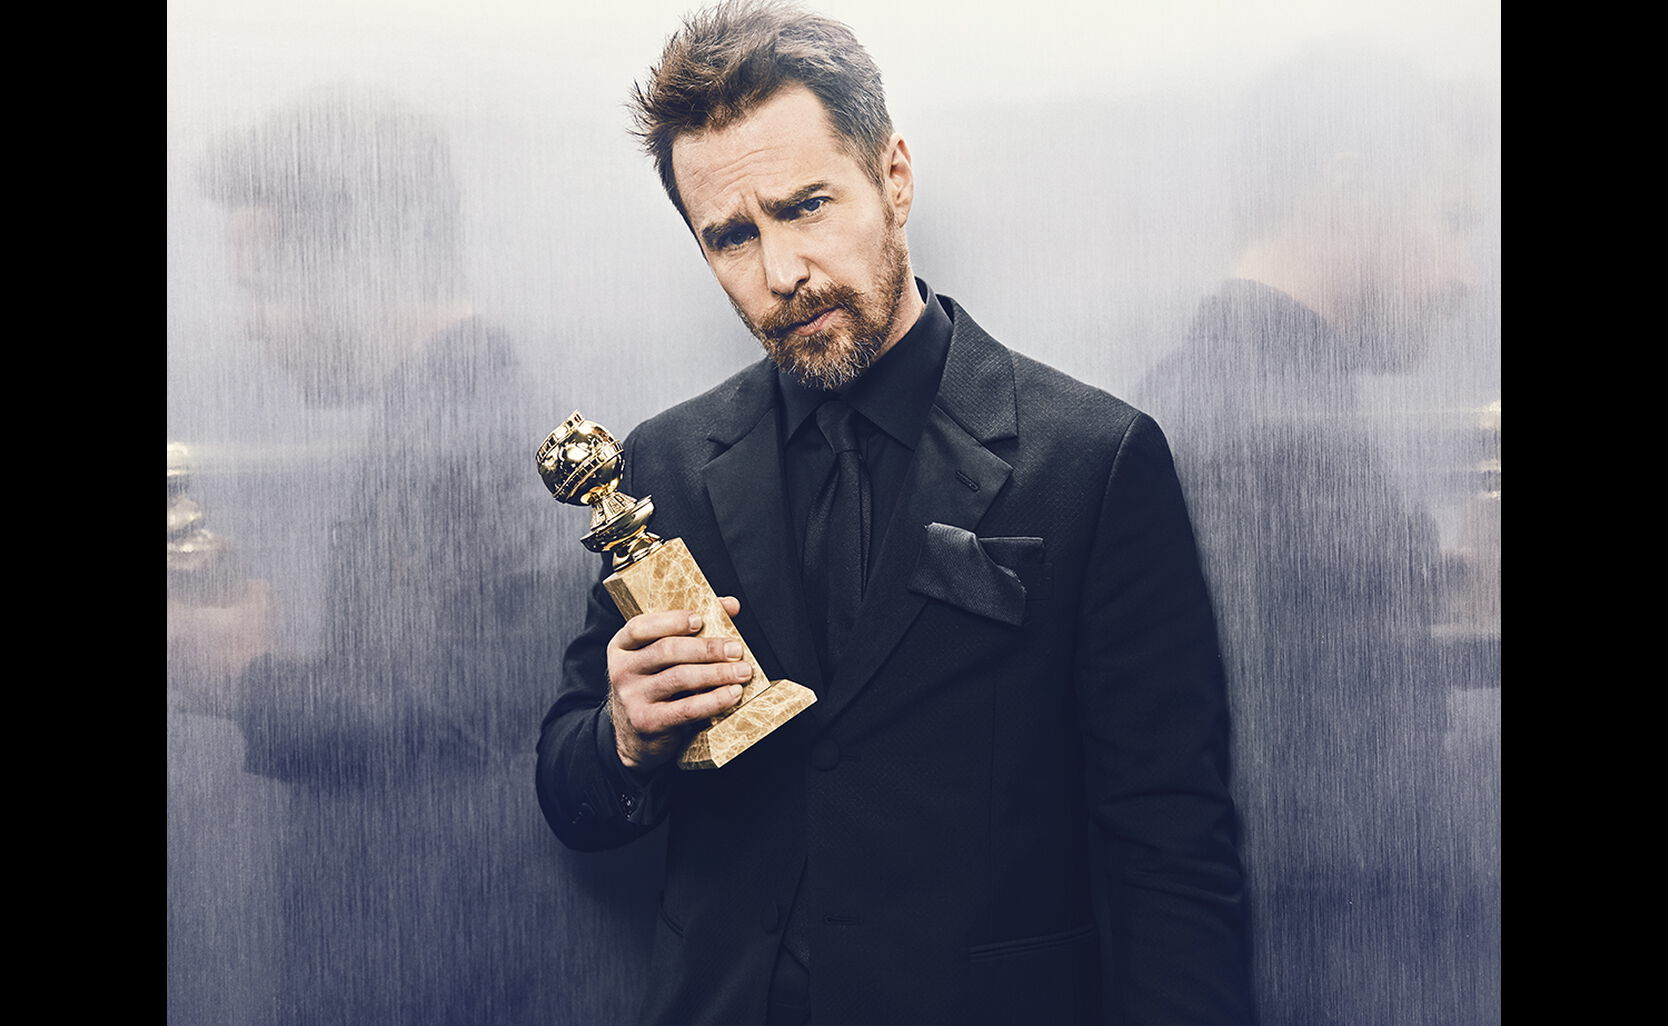 Sam Rockwell, Best Performance by an Actor in a Supporting Role, Motion Picture - Three Billboards OUtside Ebbing, Missouri